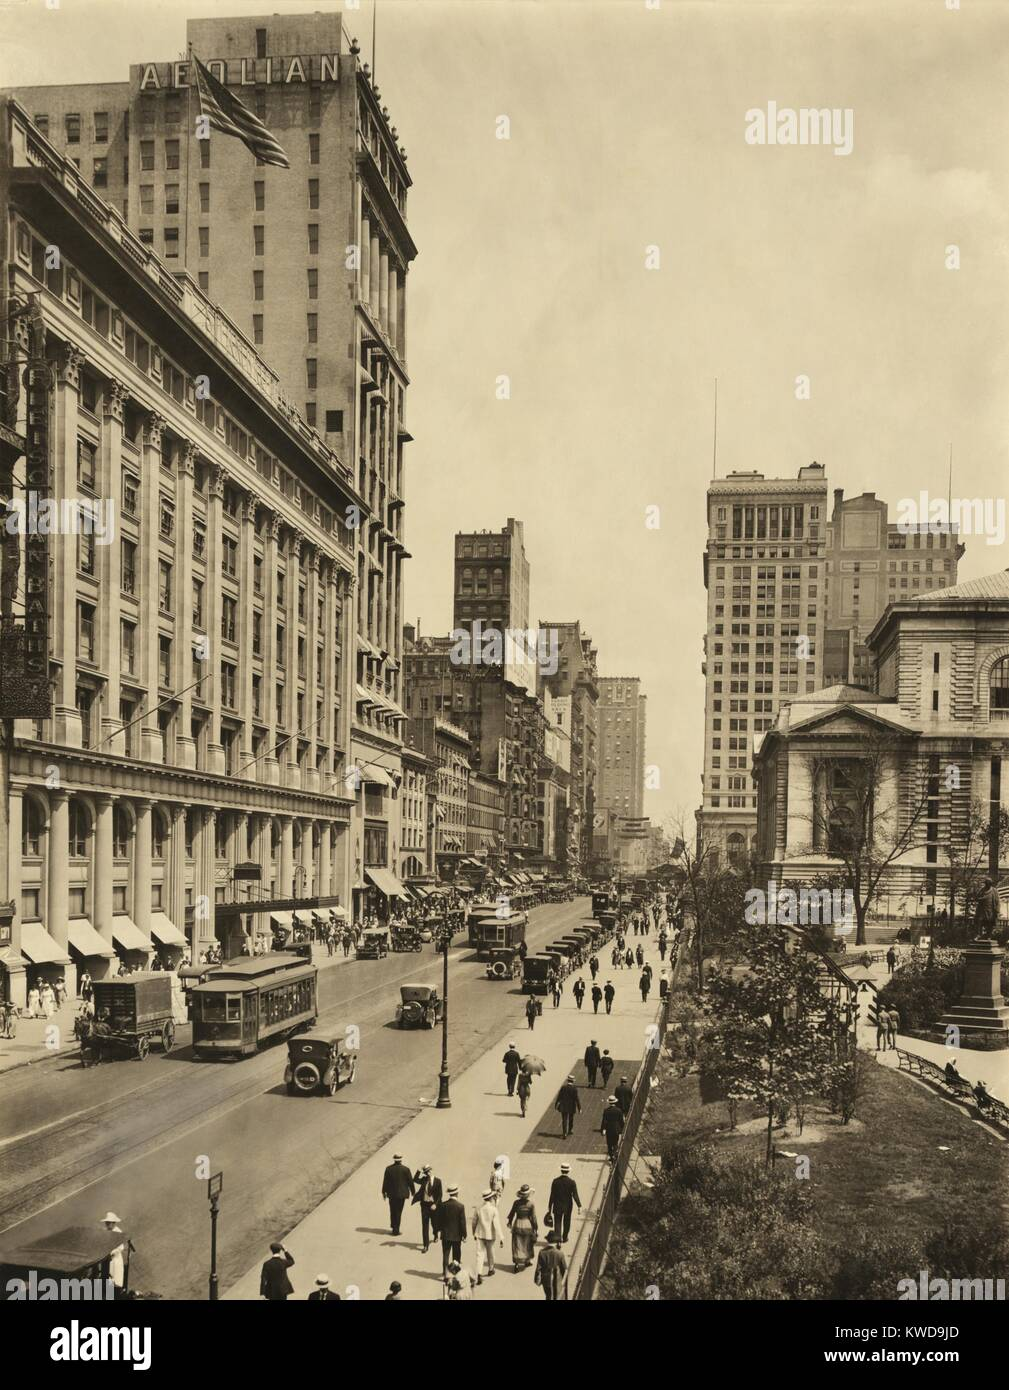 New York City's 42nd St. looking east from 6th Avenue. On right is the New York Public Library and Bryant Park, - Stock Image